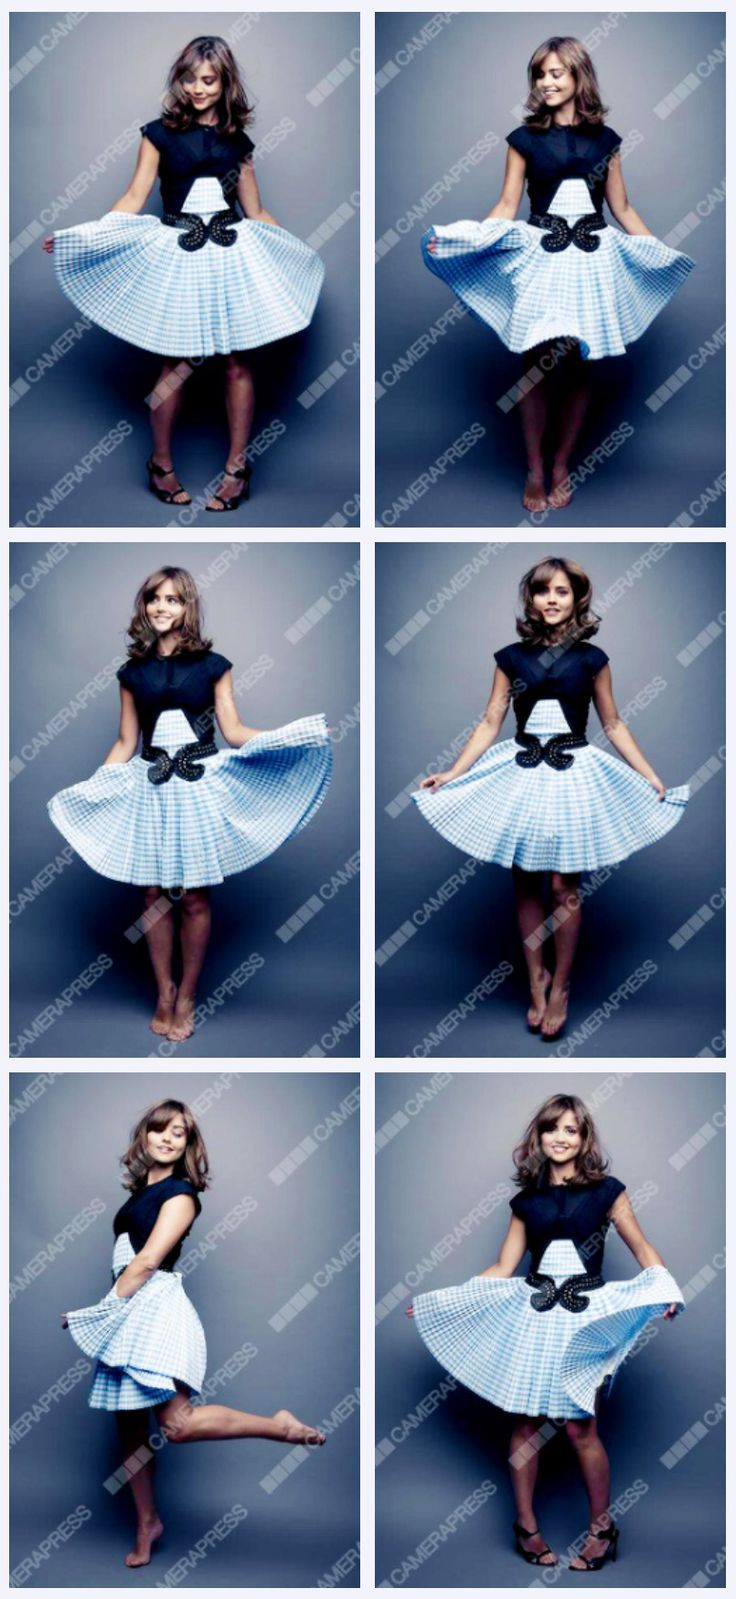 Jenna for Glamour UK.  Seriously, could she be any cuter??  And...TARDIS blue...how can the Doctor resist?